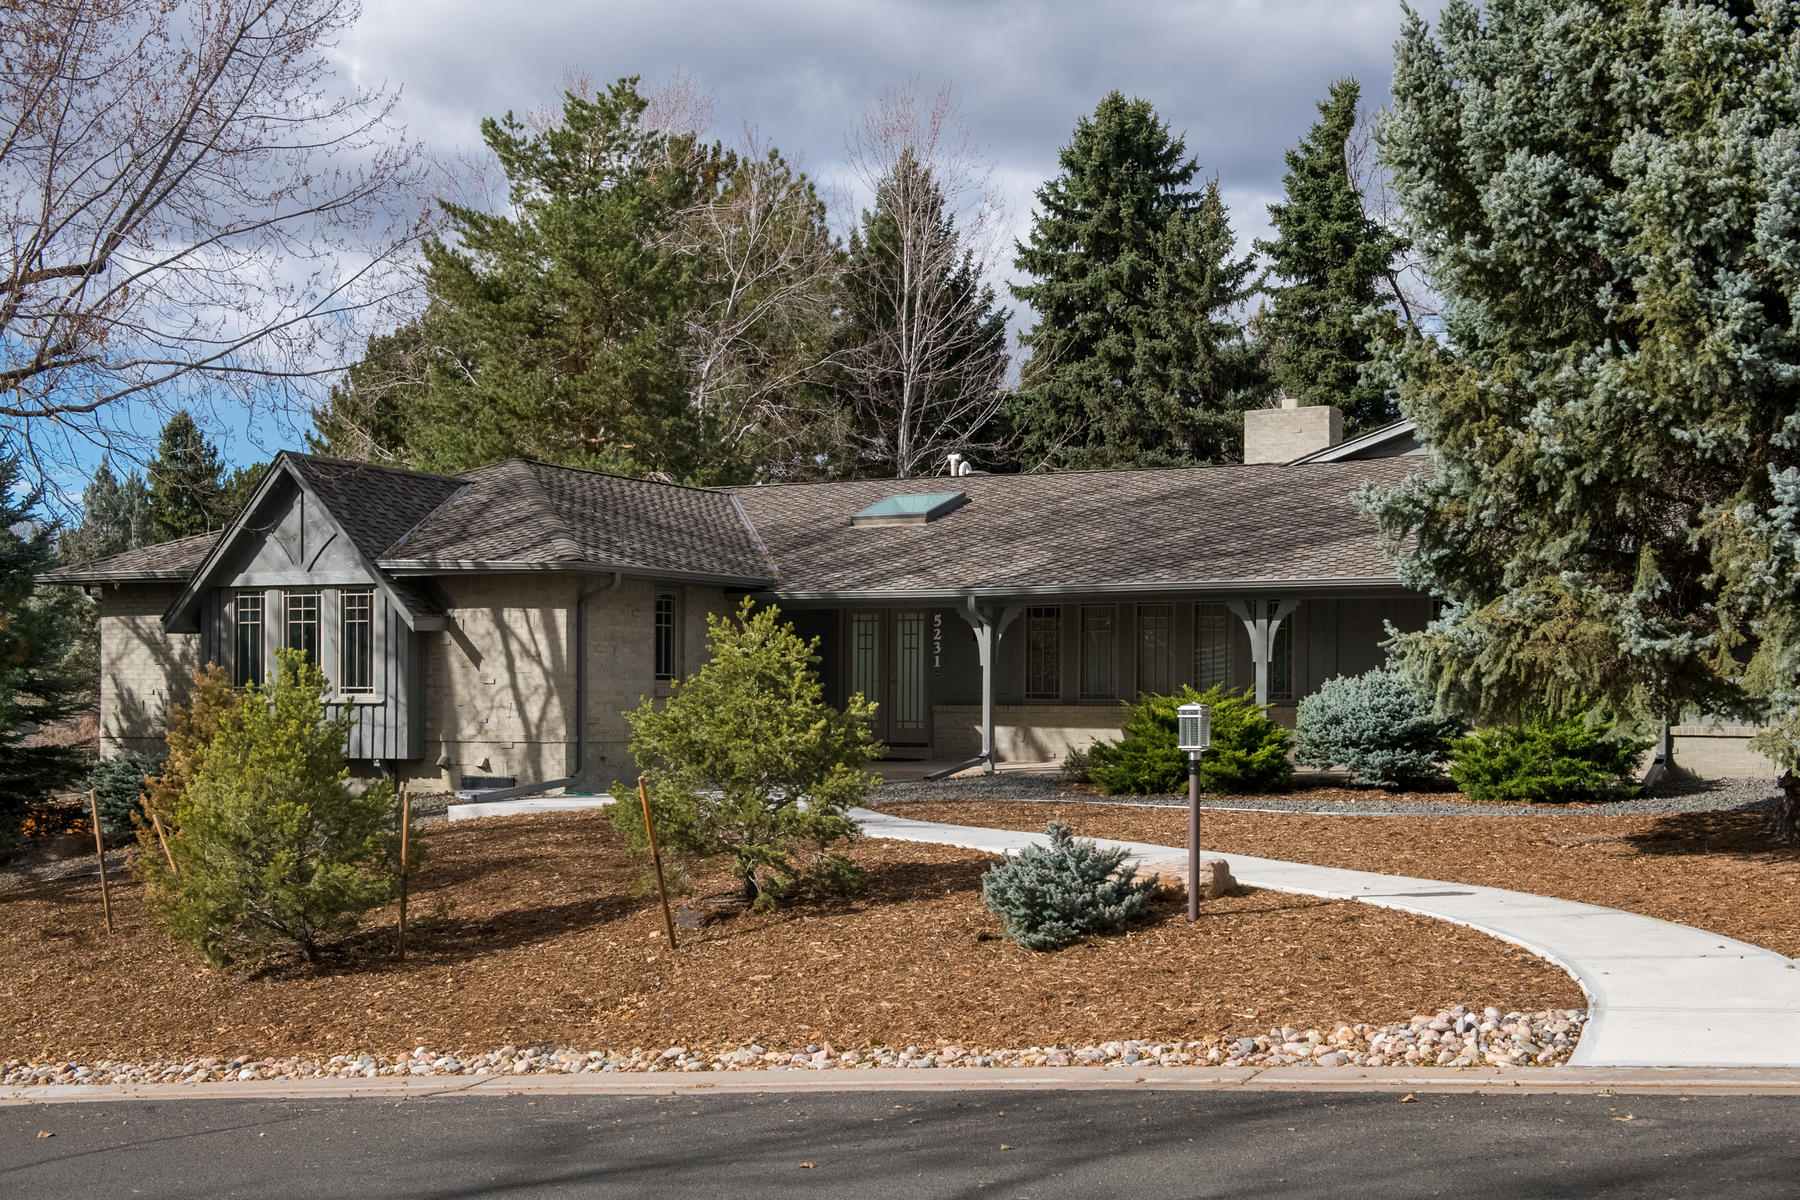 Single Family Home for Active at Mid-Century Modern In Desirable Cherry Hills North 5231 Sanford Cir Englewood, Colorado 80013 United States